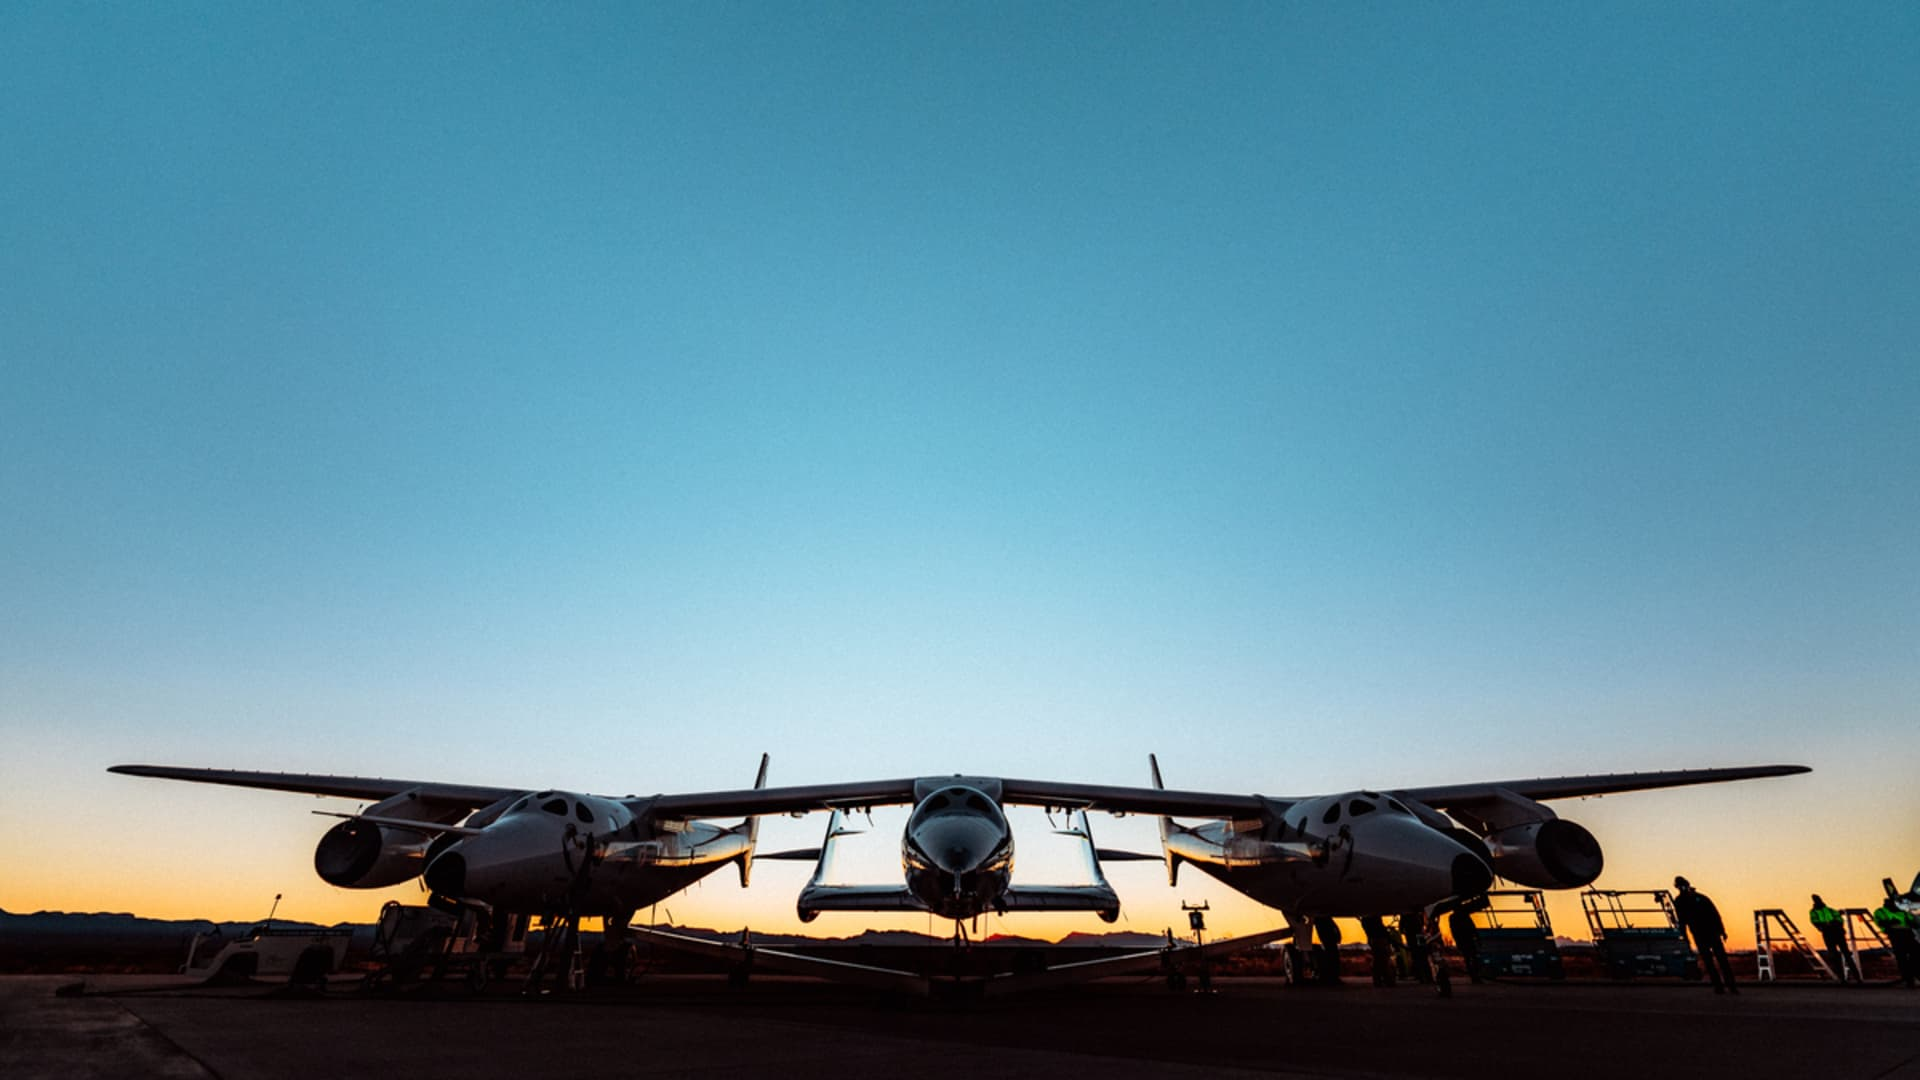 Preflight operations underway on the company's SpaceShipTwo vehicle Unity and mothership Eve.